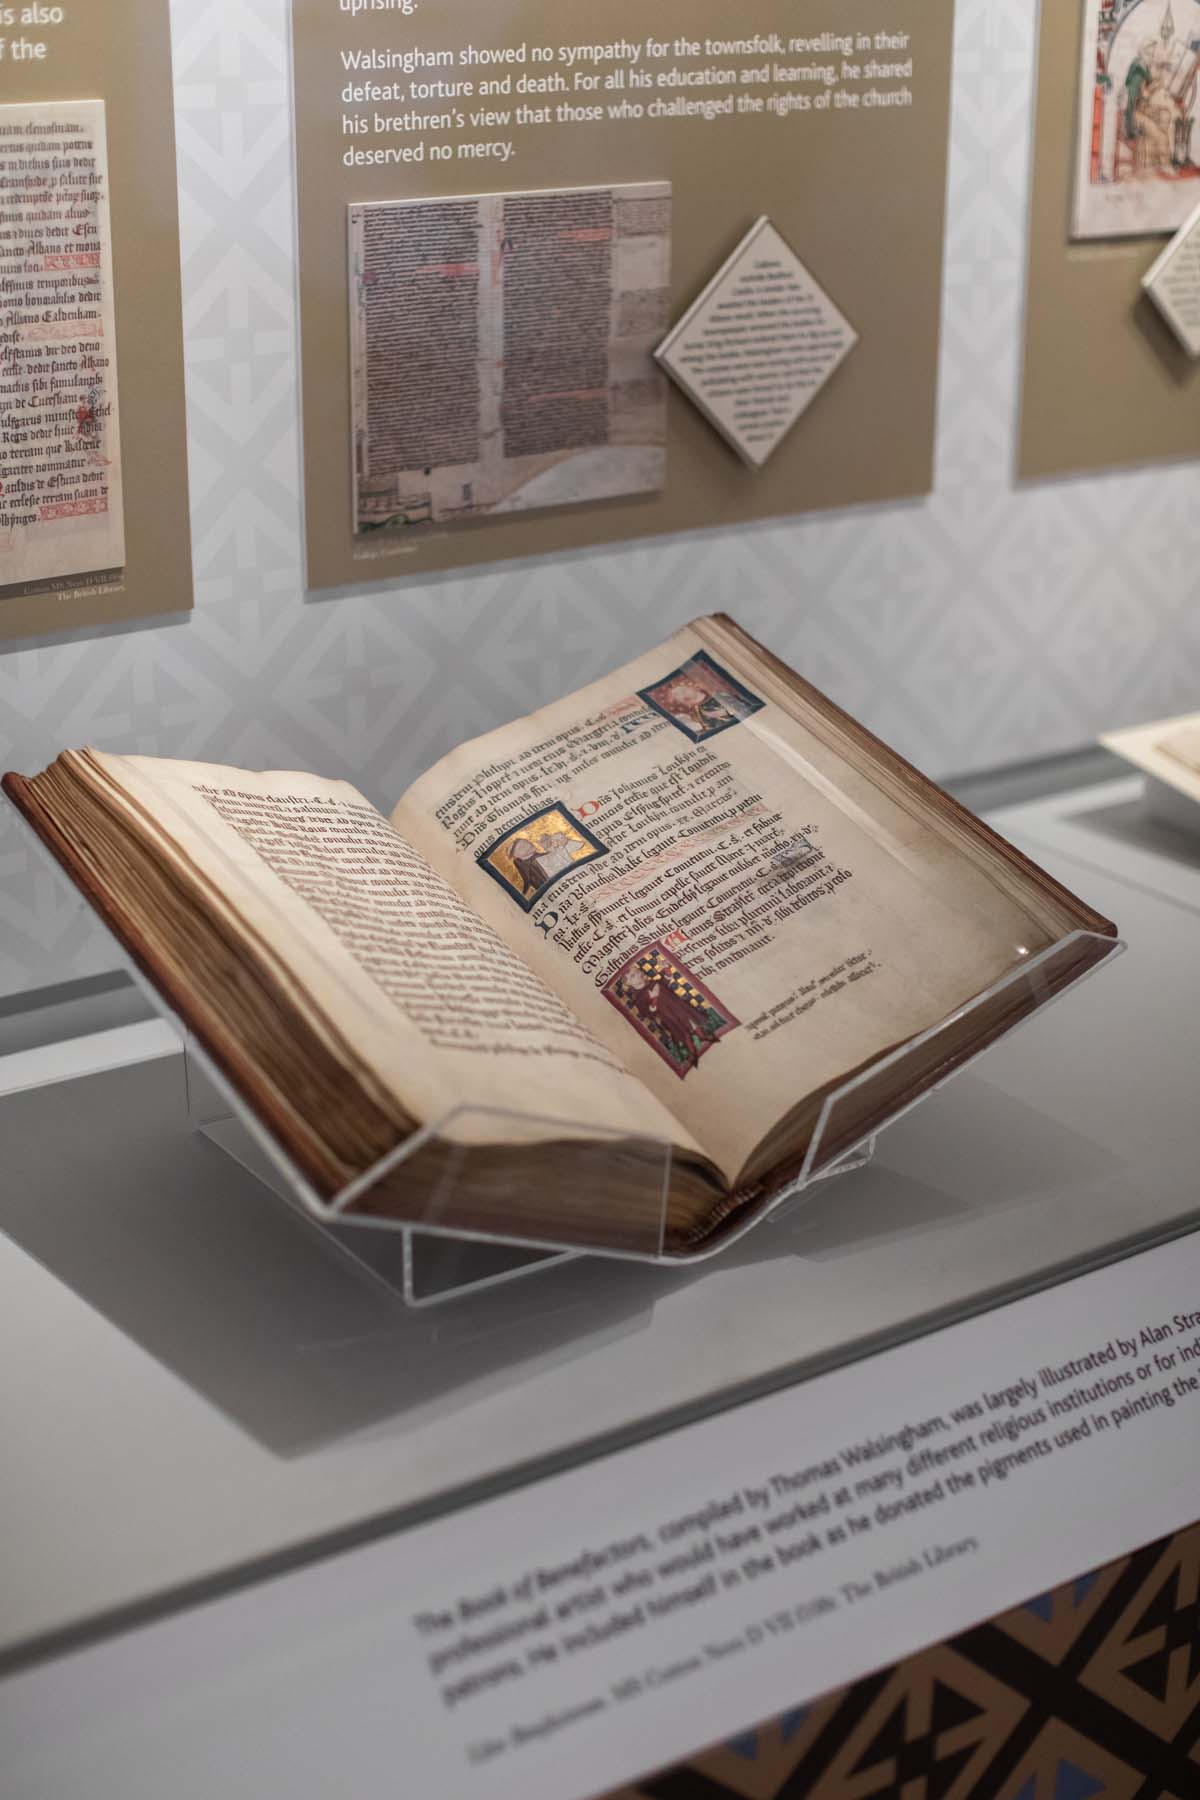 photo of an open book of medieval text and illustration on display in a case